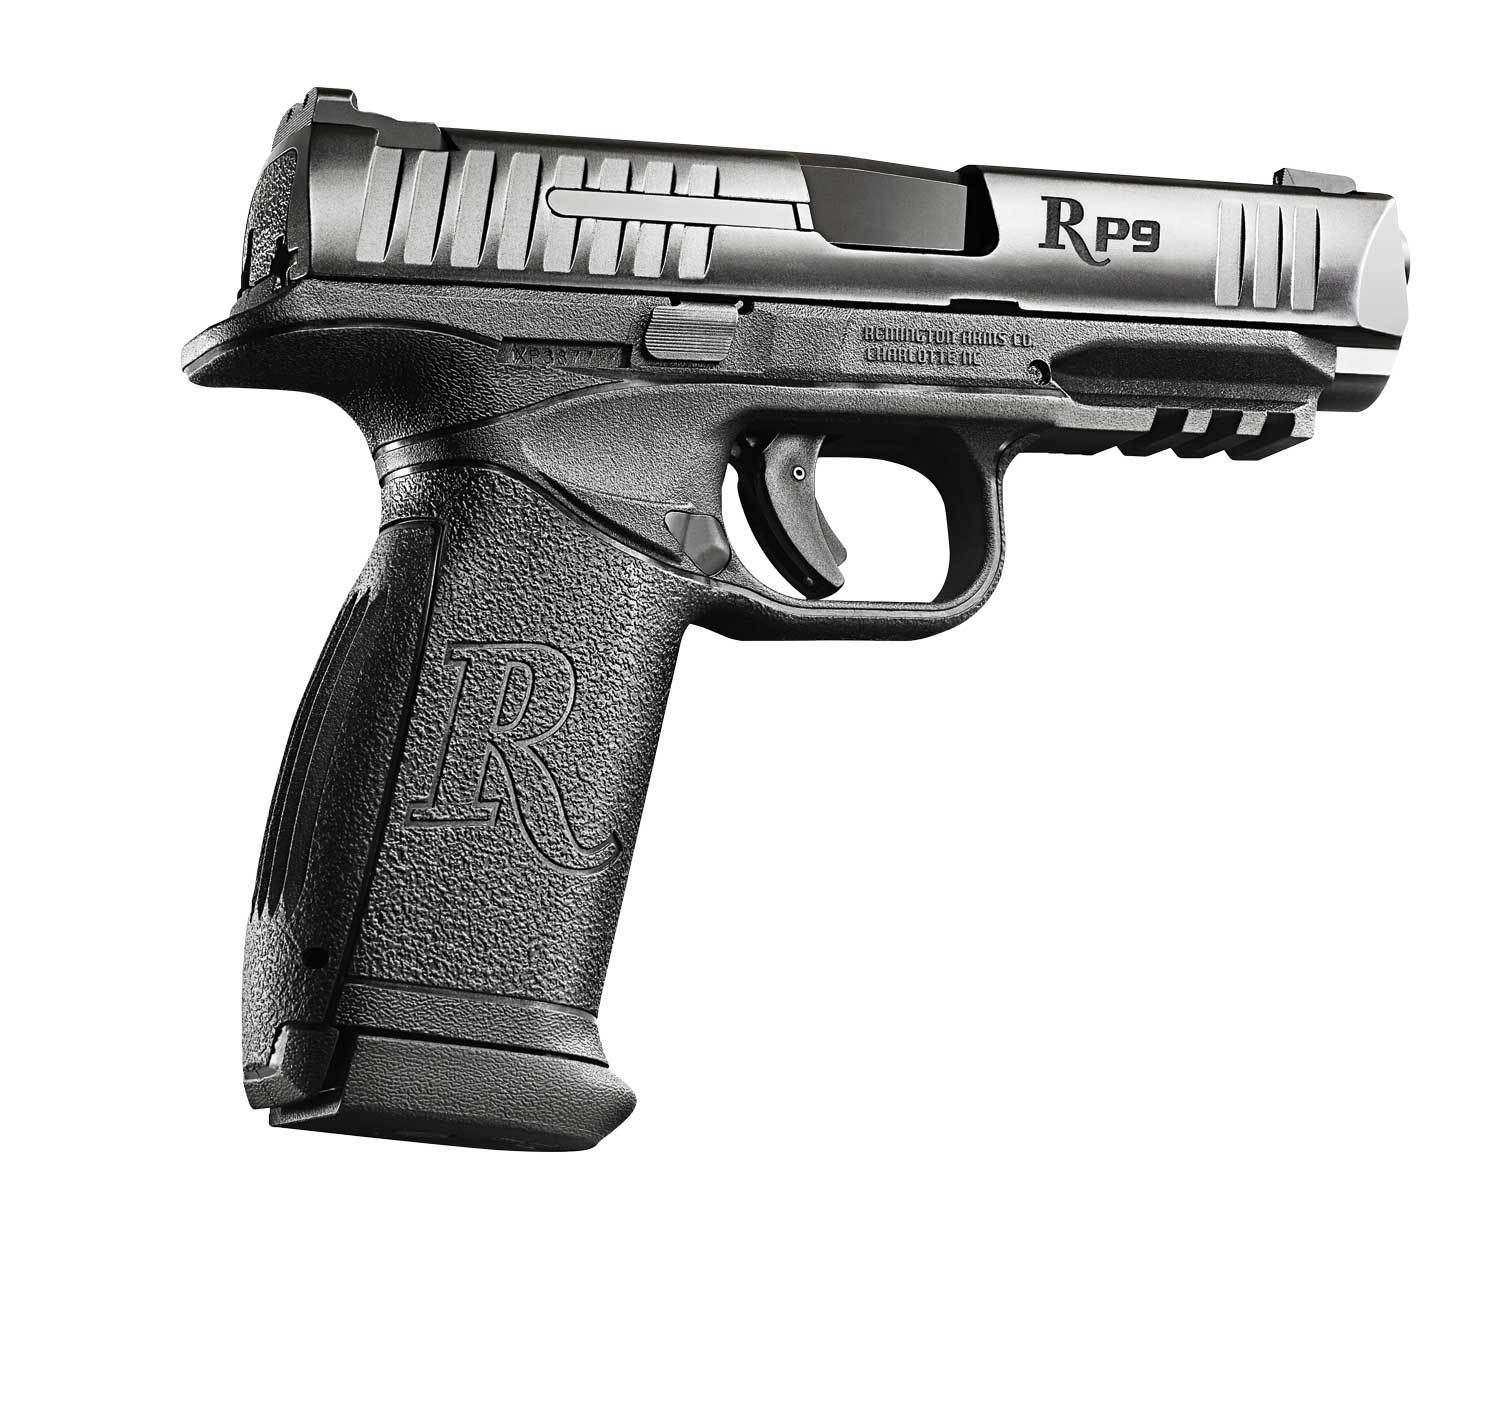 Remington RP pistol in 9mm